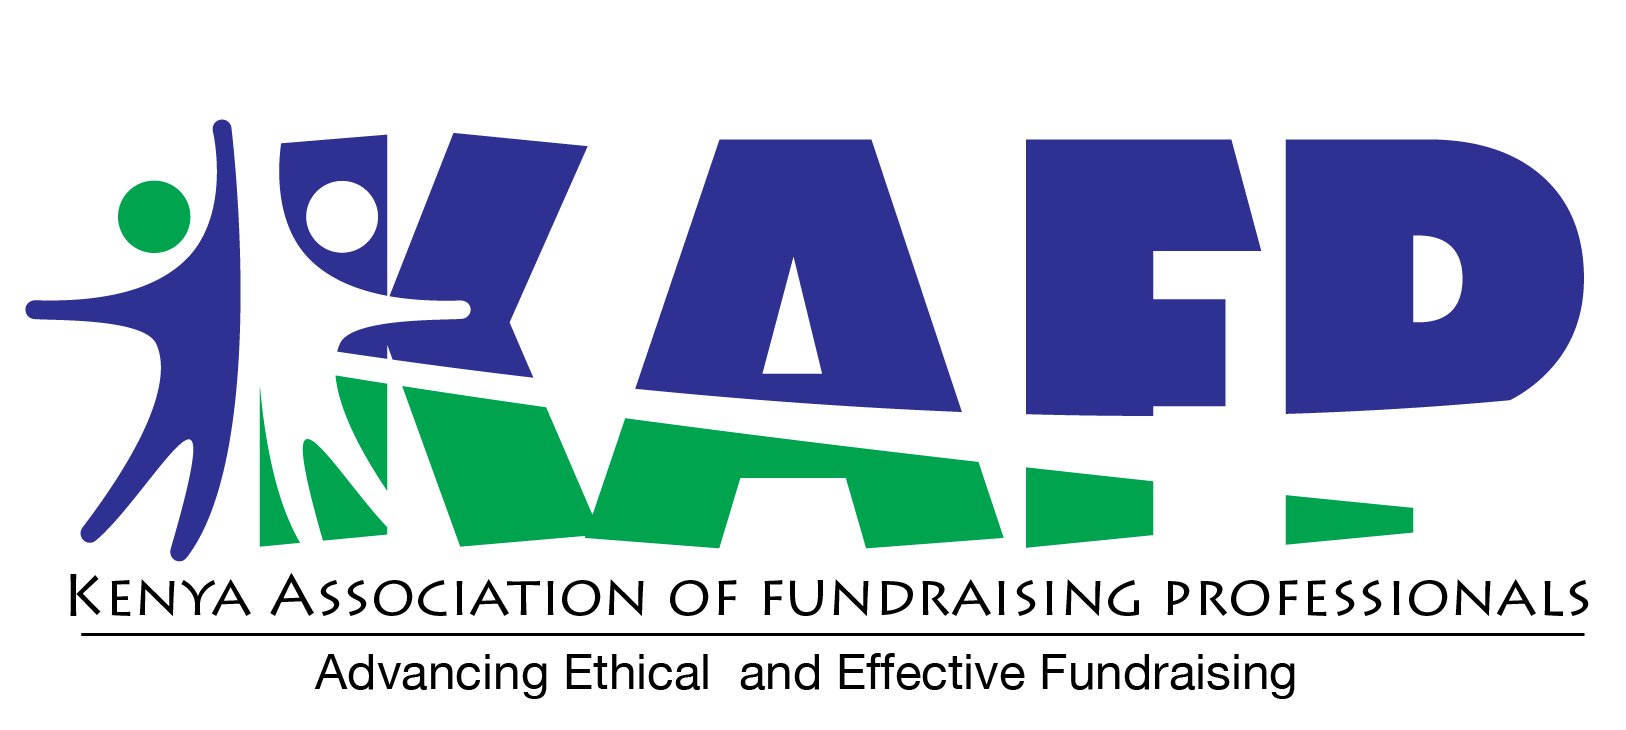 Cfre International Certified Fund Raising Executive